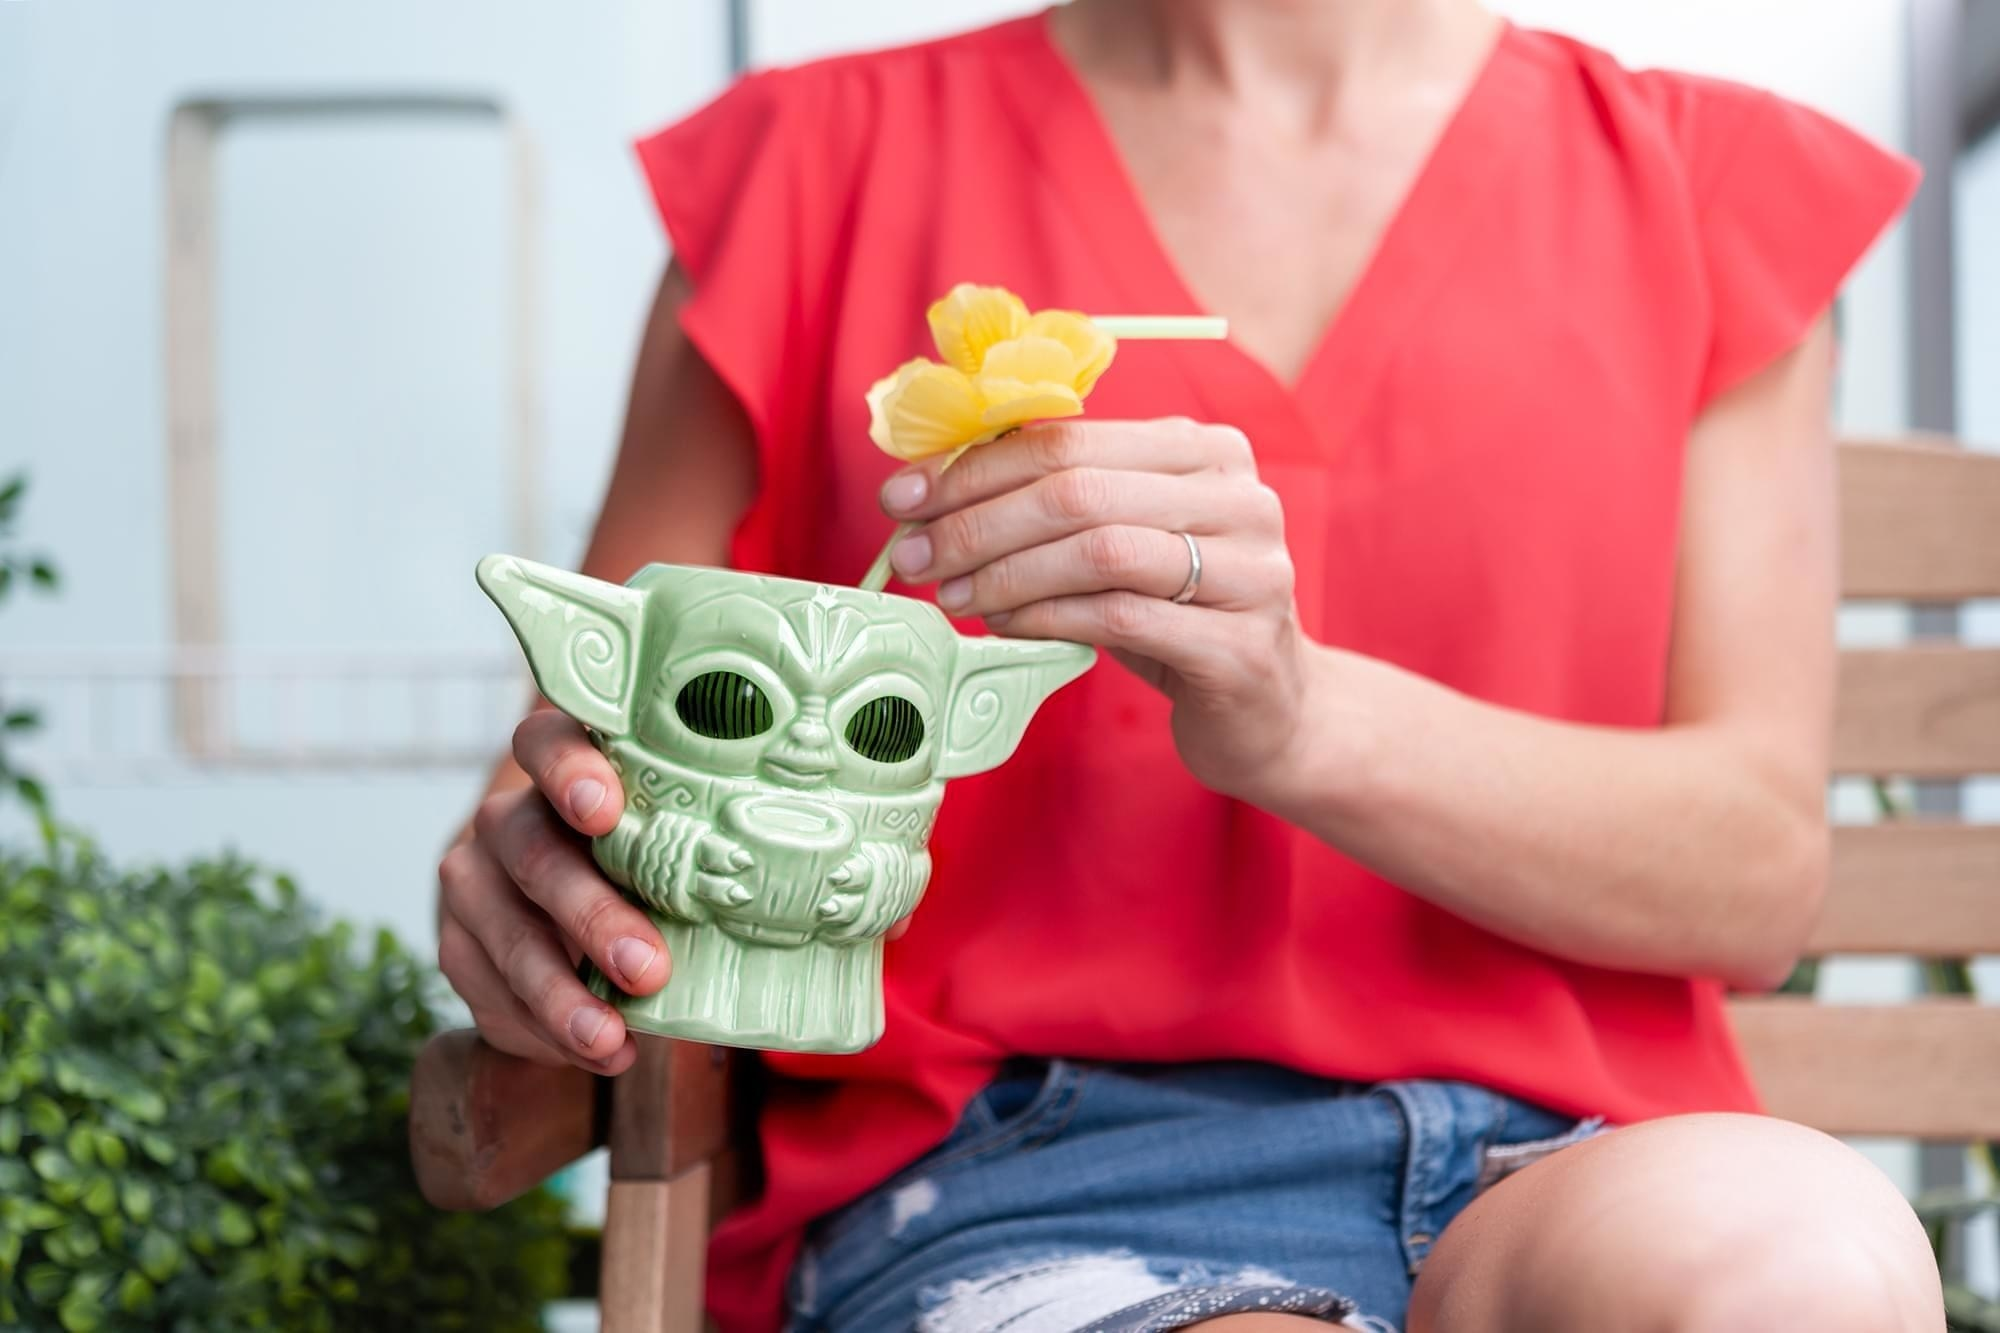 Model holding the tiki mug that looks like Baby Yoda in all green